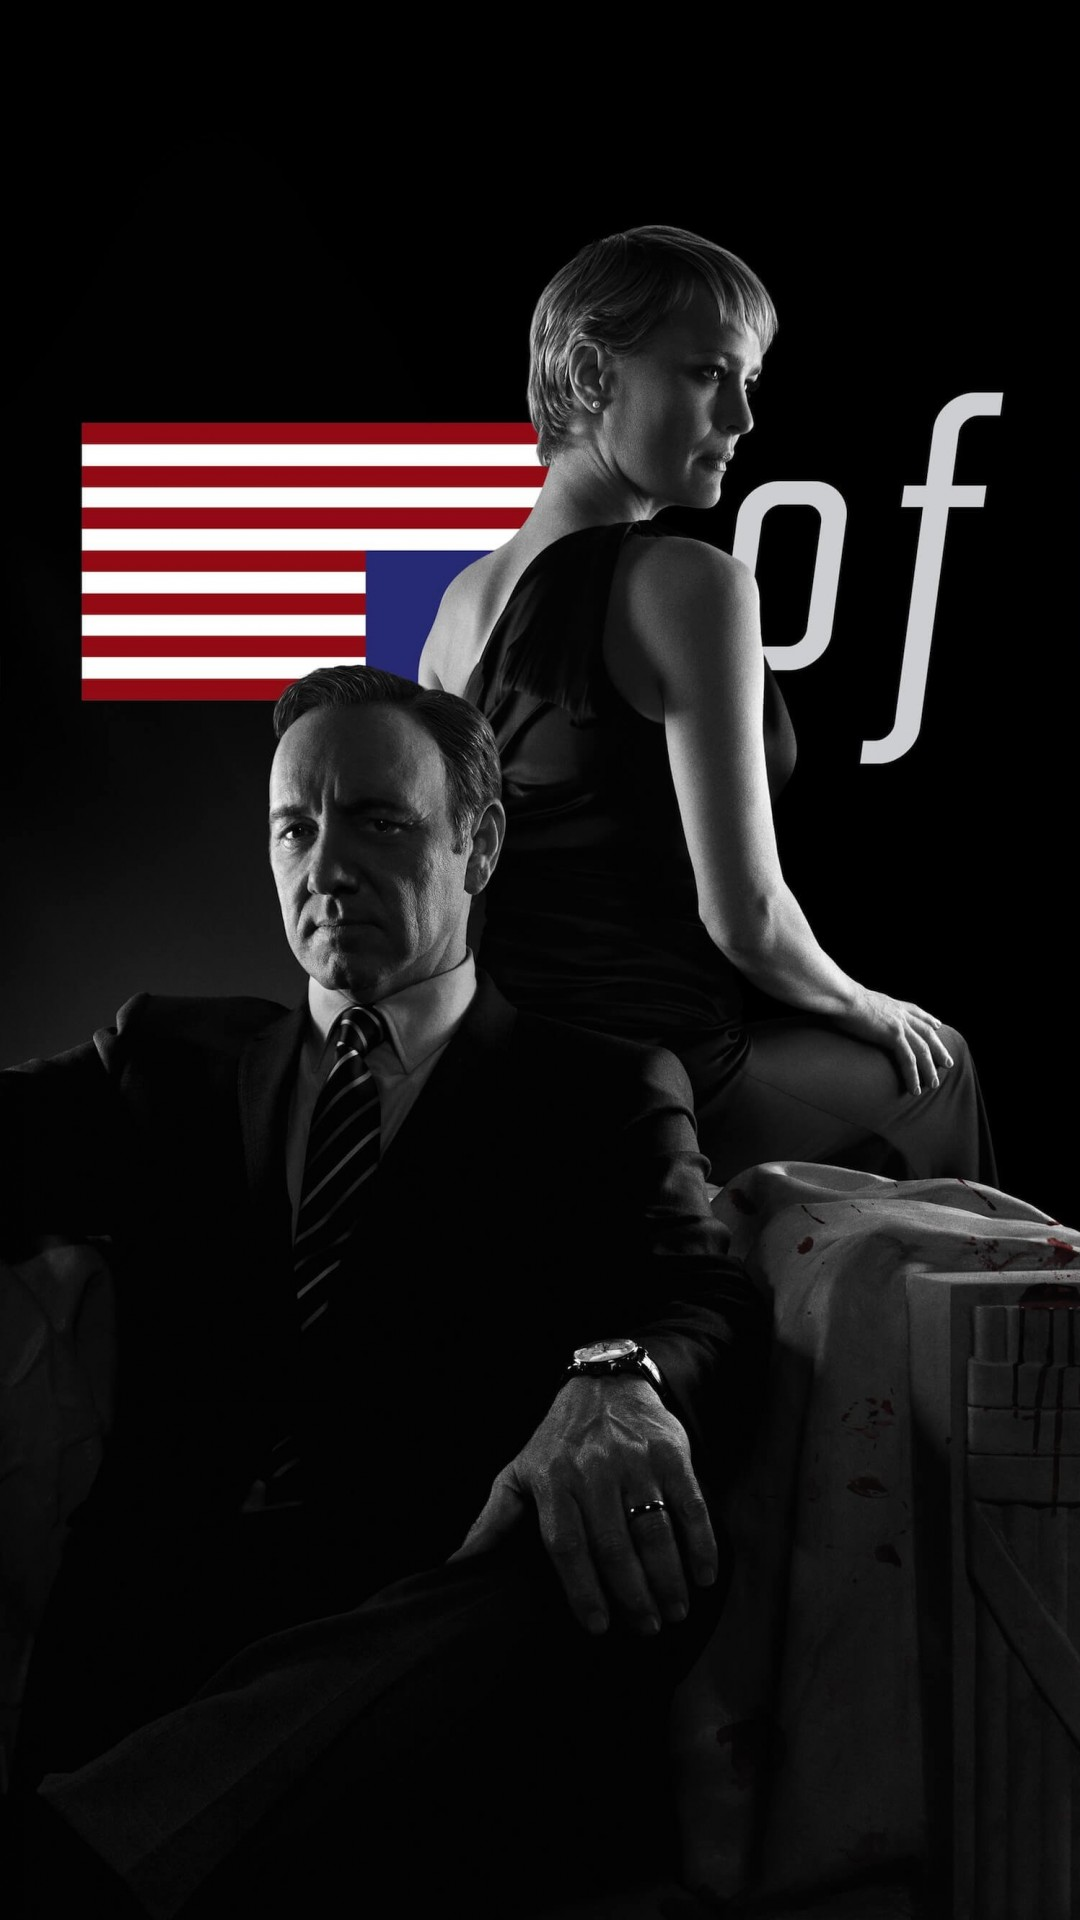 House of Cards - Black & White Wallpaper for HTC One